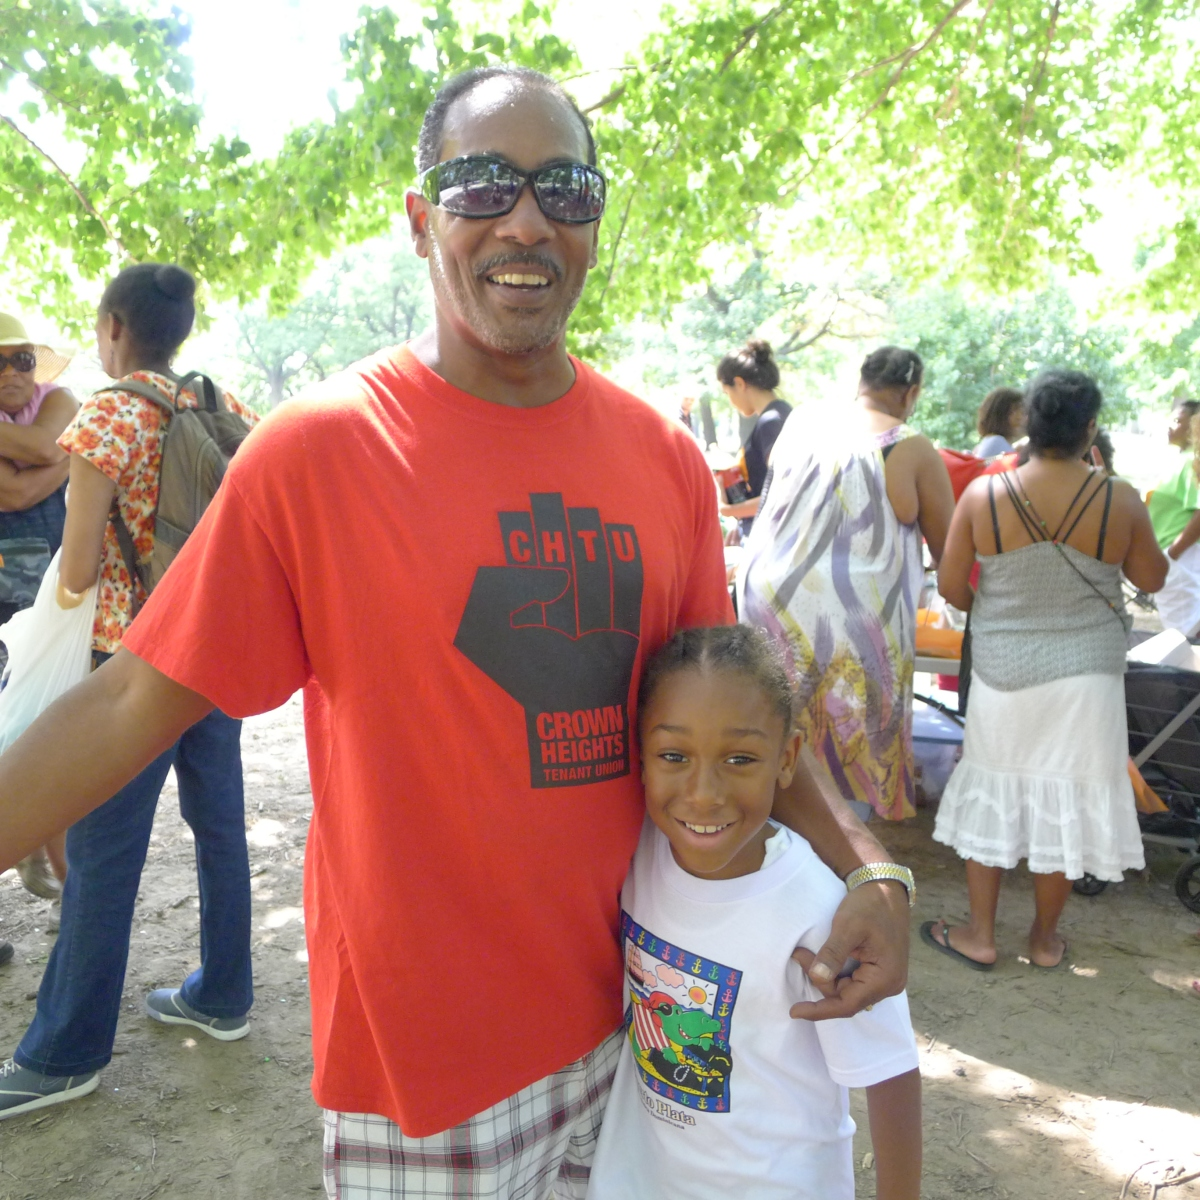 Faces of Flatbush: Tenants, Allies Unite for 2nd Annual Cookout at Prospect Park